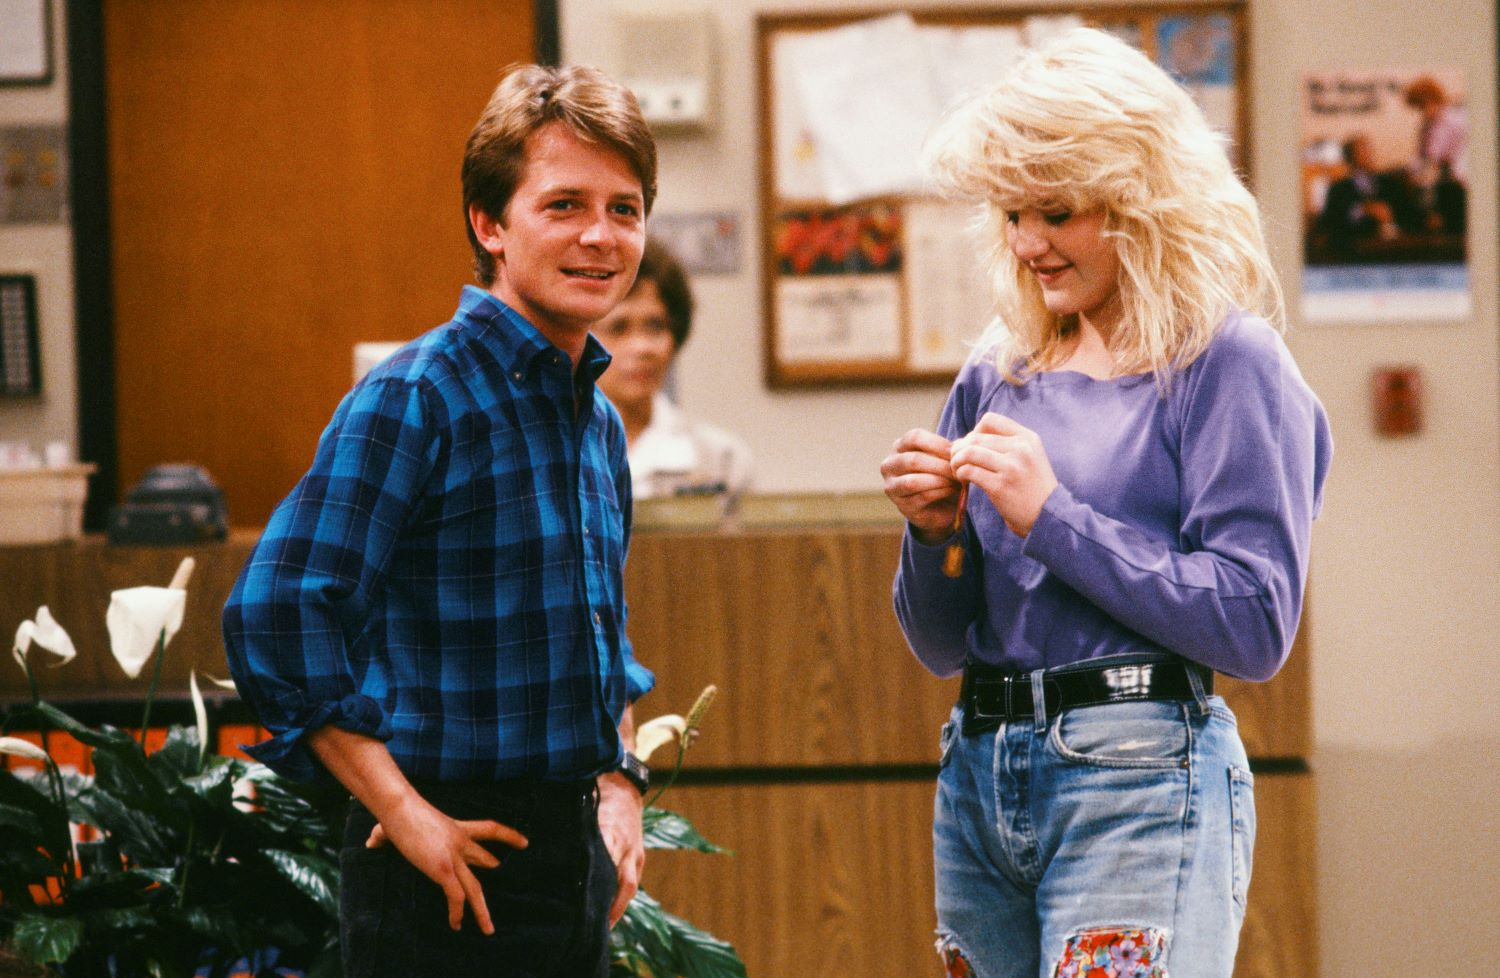 Michael J. Fox and Tina Youthers in 'Family Ties'